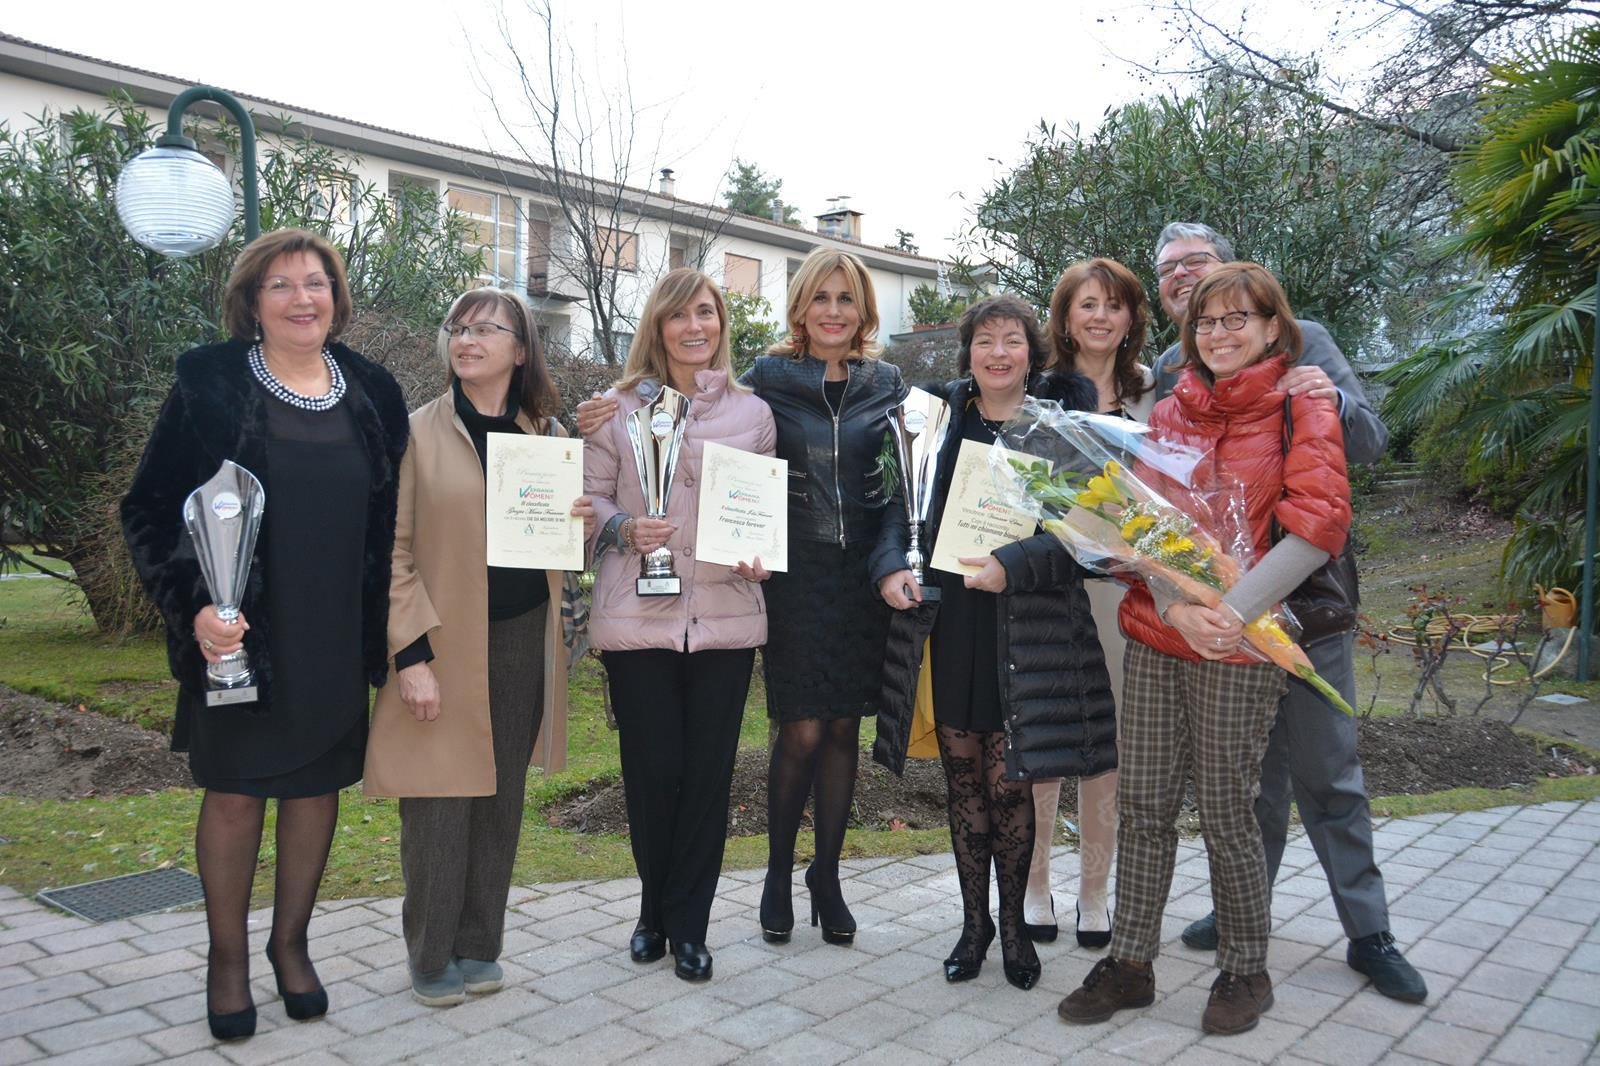 Premio letterario Verbania for Women